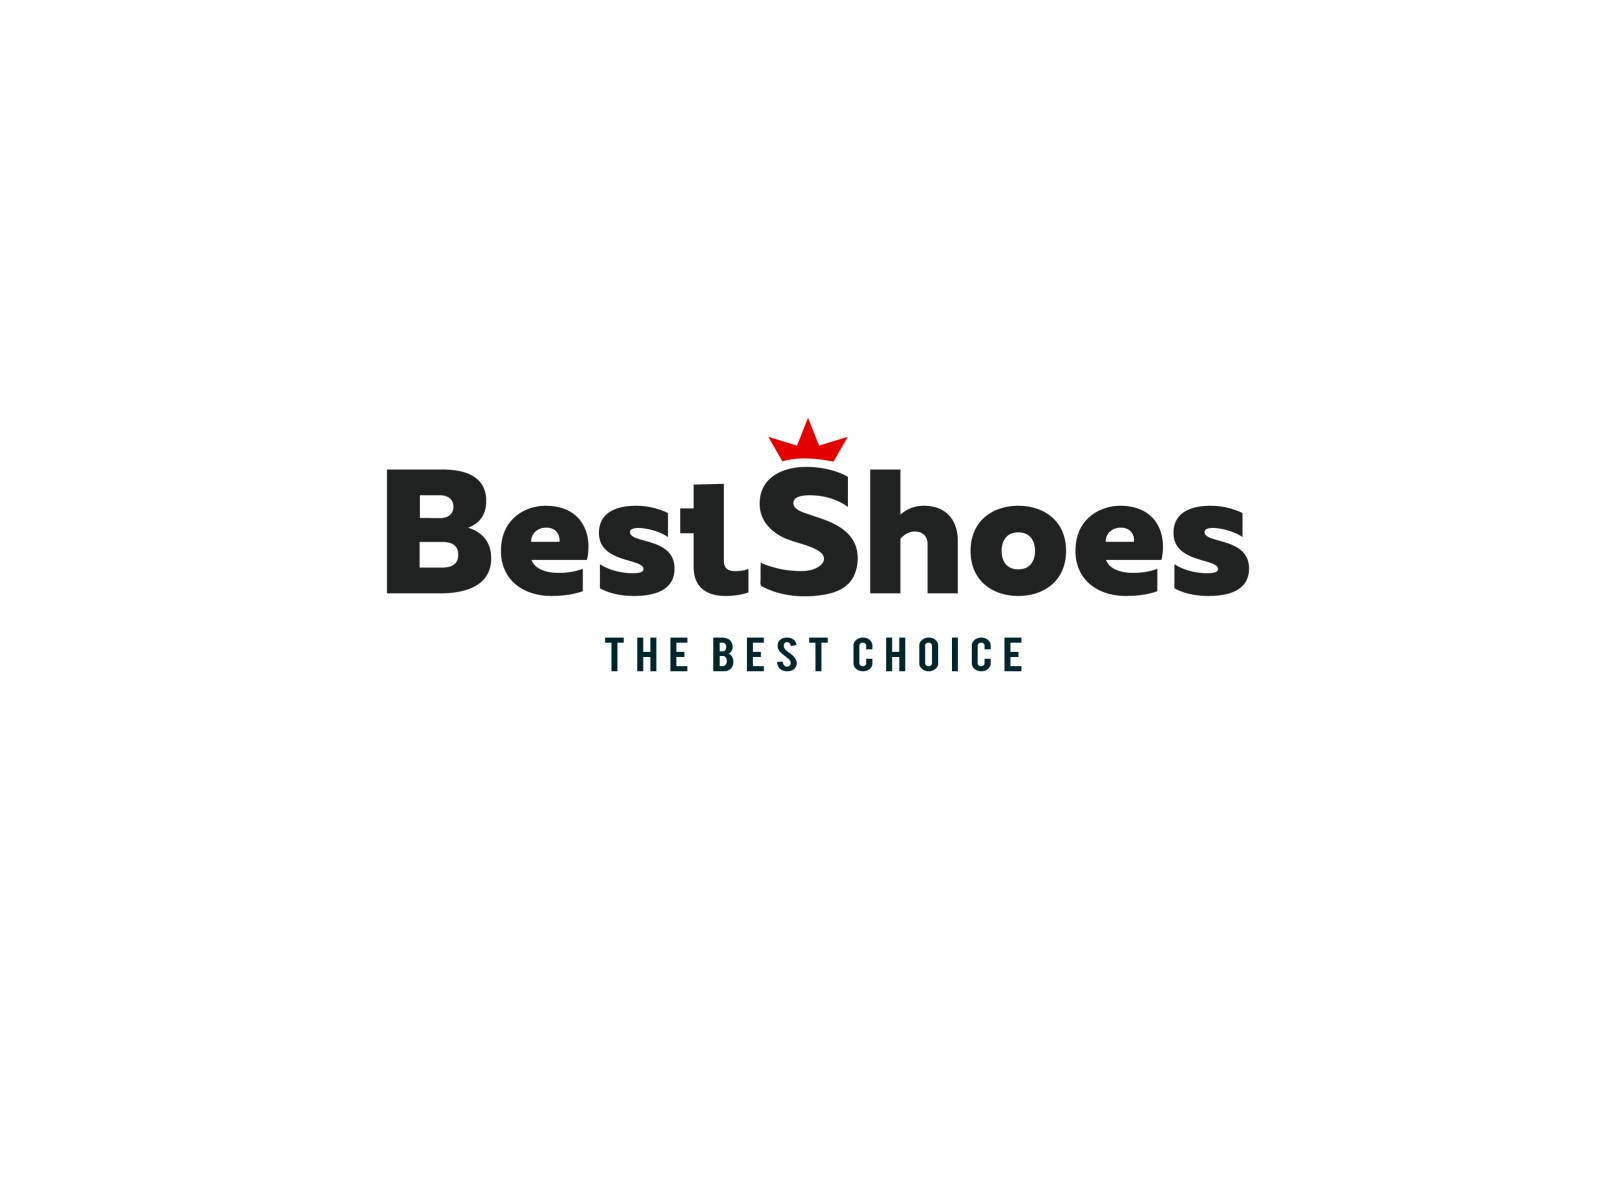 Best Shoes